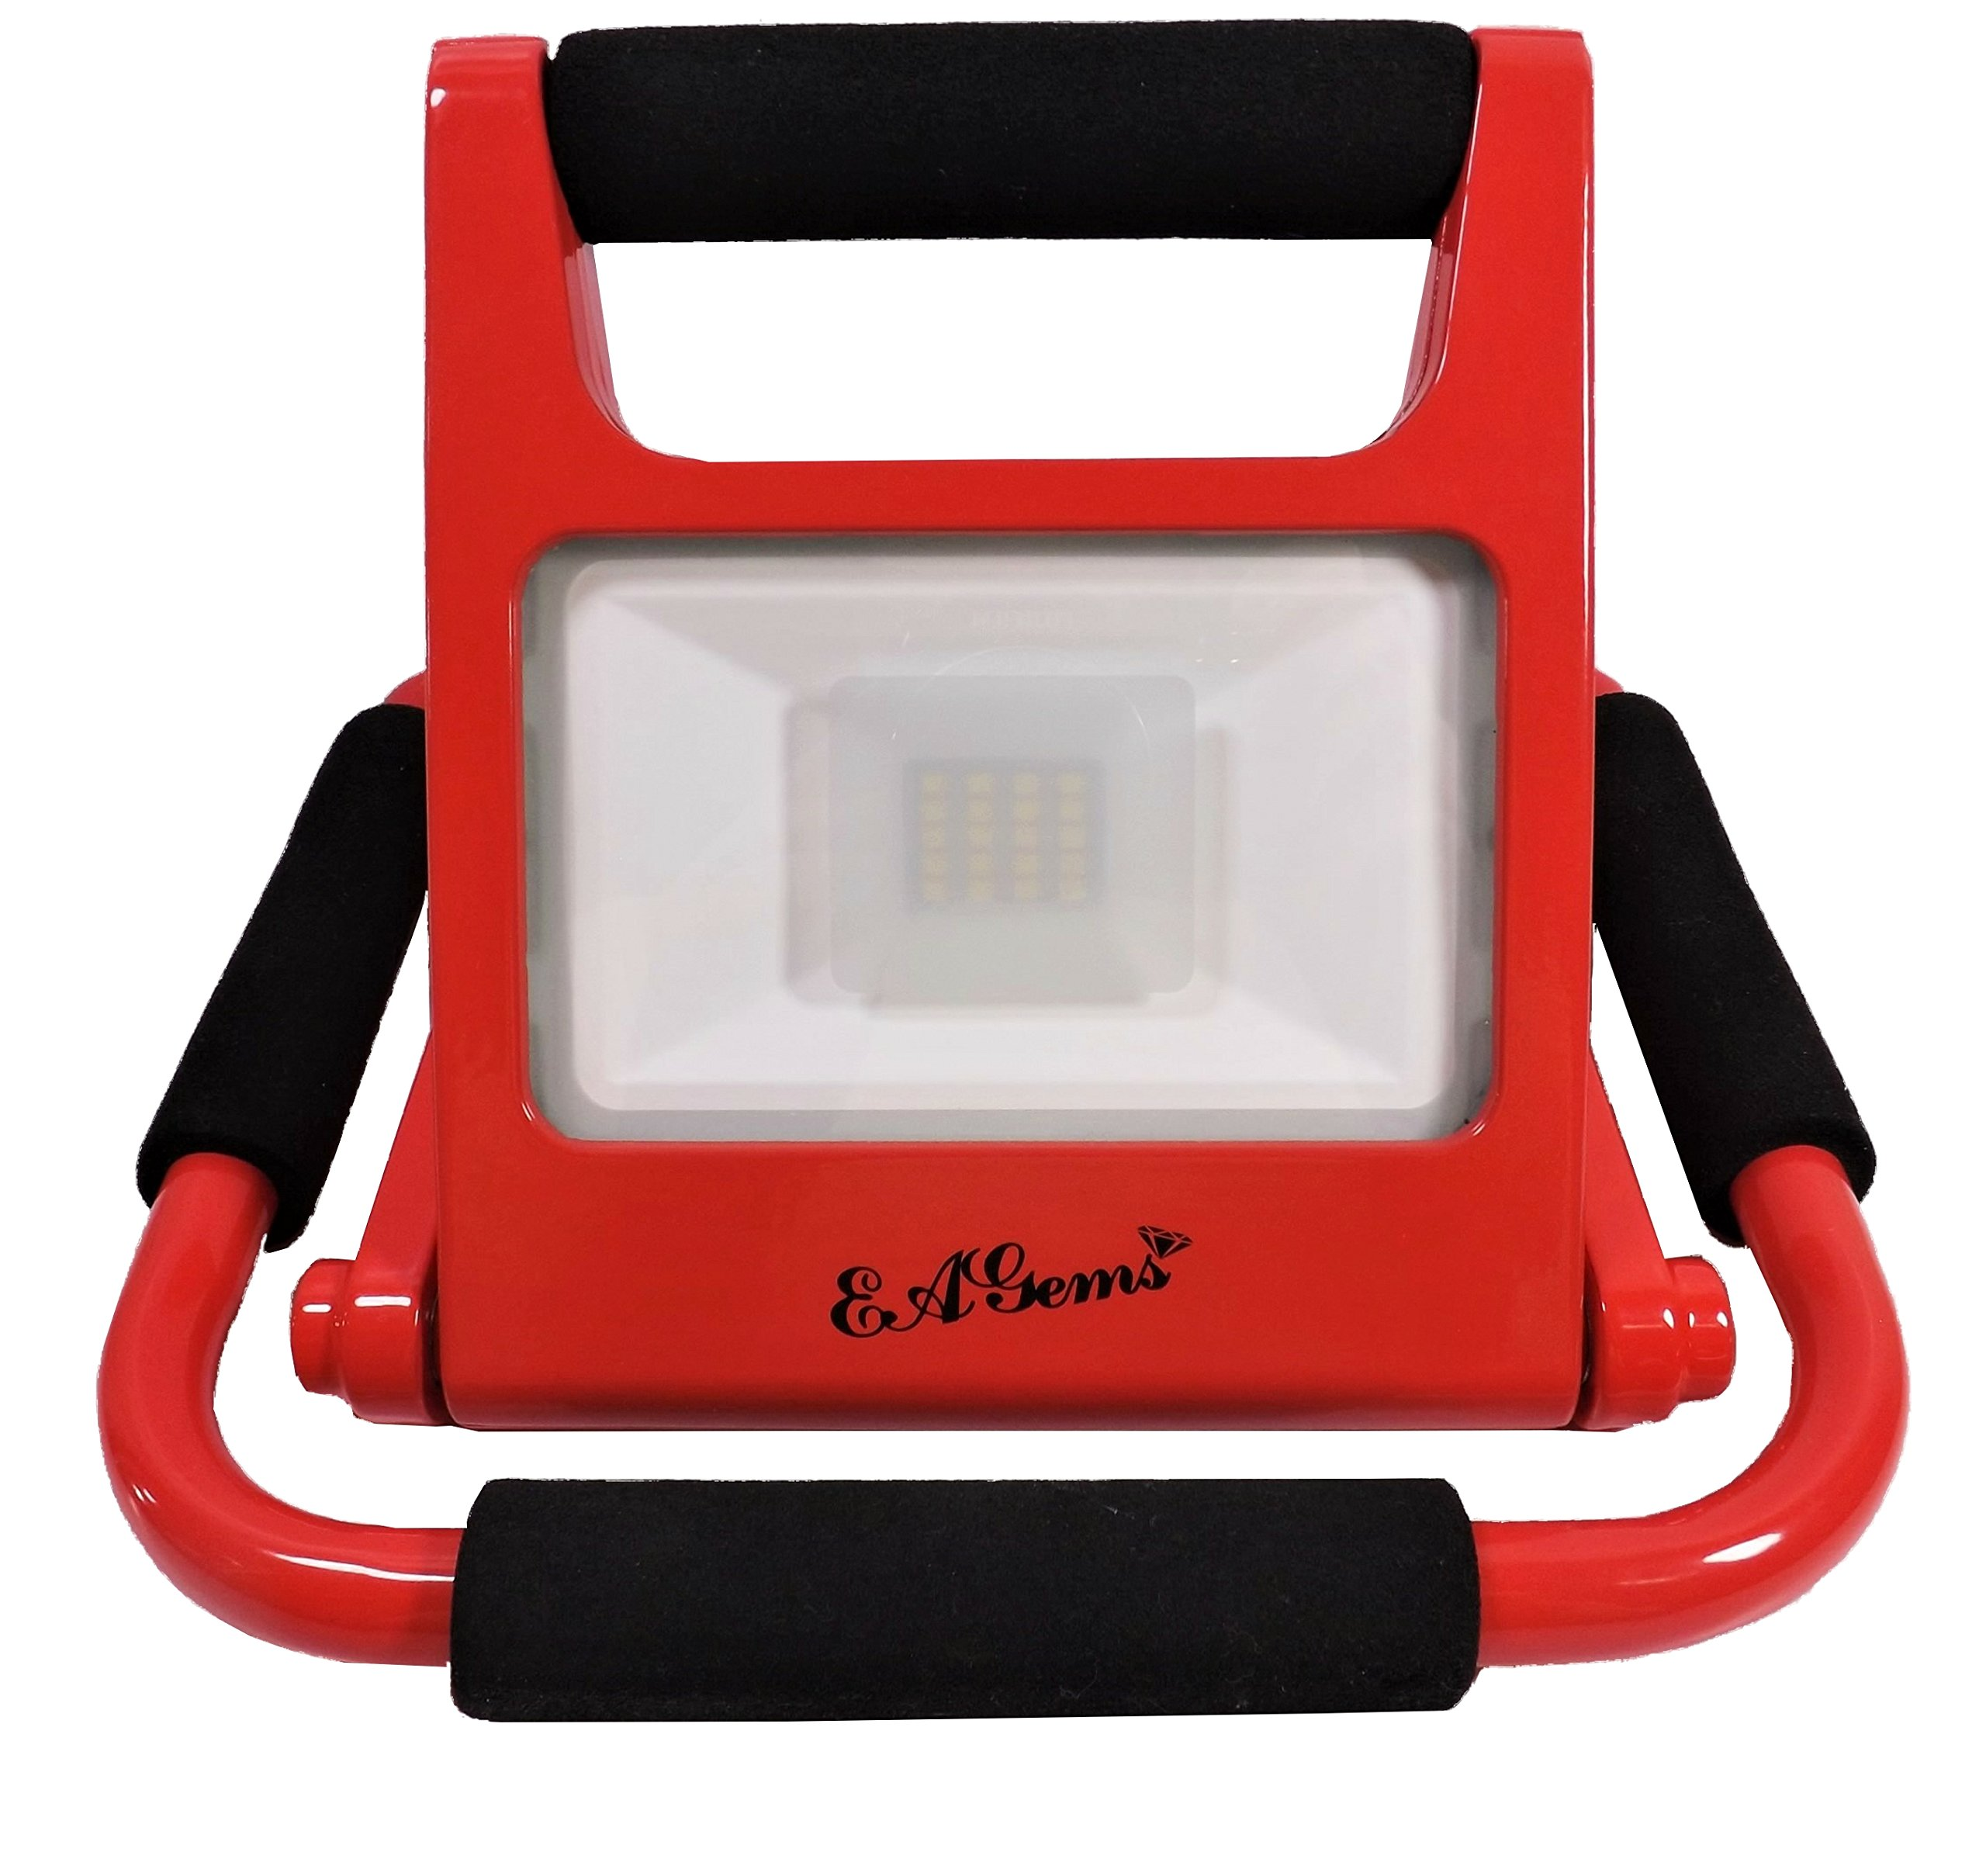 LED Work Light by EAGems - Rechargeable Bright 10 Watt Lamp, Great for Home-Office-Car-Outside/in, Use as Emergency Spotlight Or Flashlight - Portable, Folds to 1'' Thick - Adjustable 360 Degrees, Red